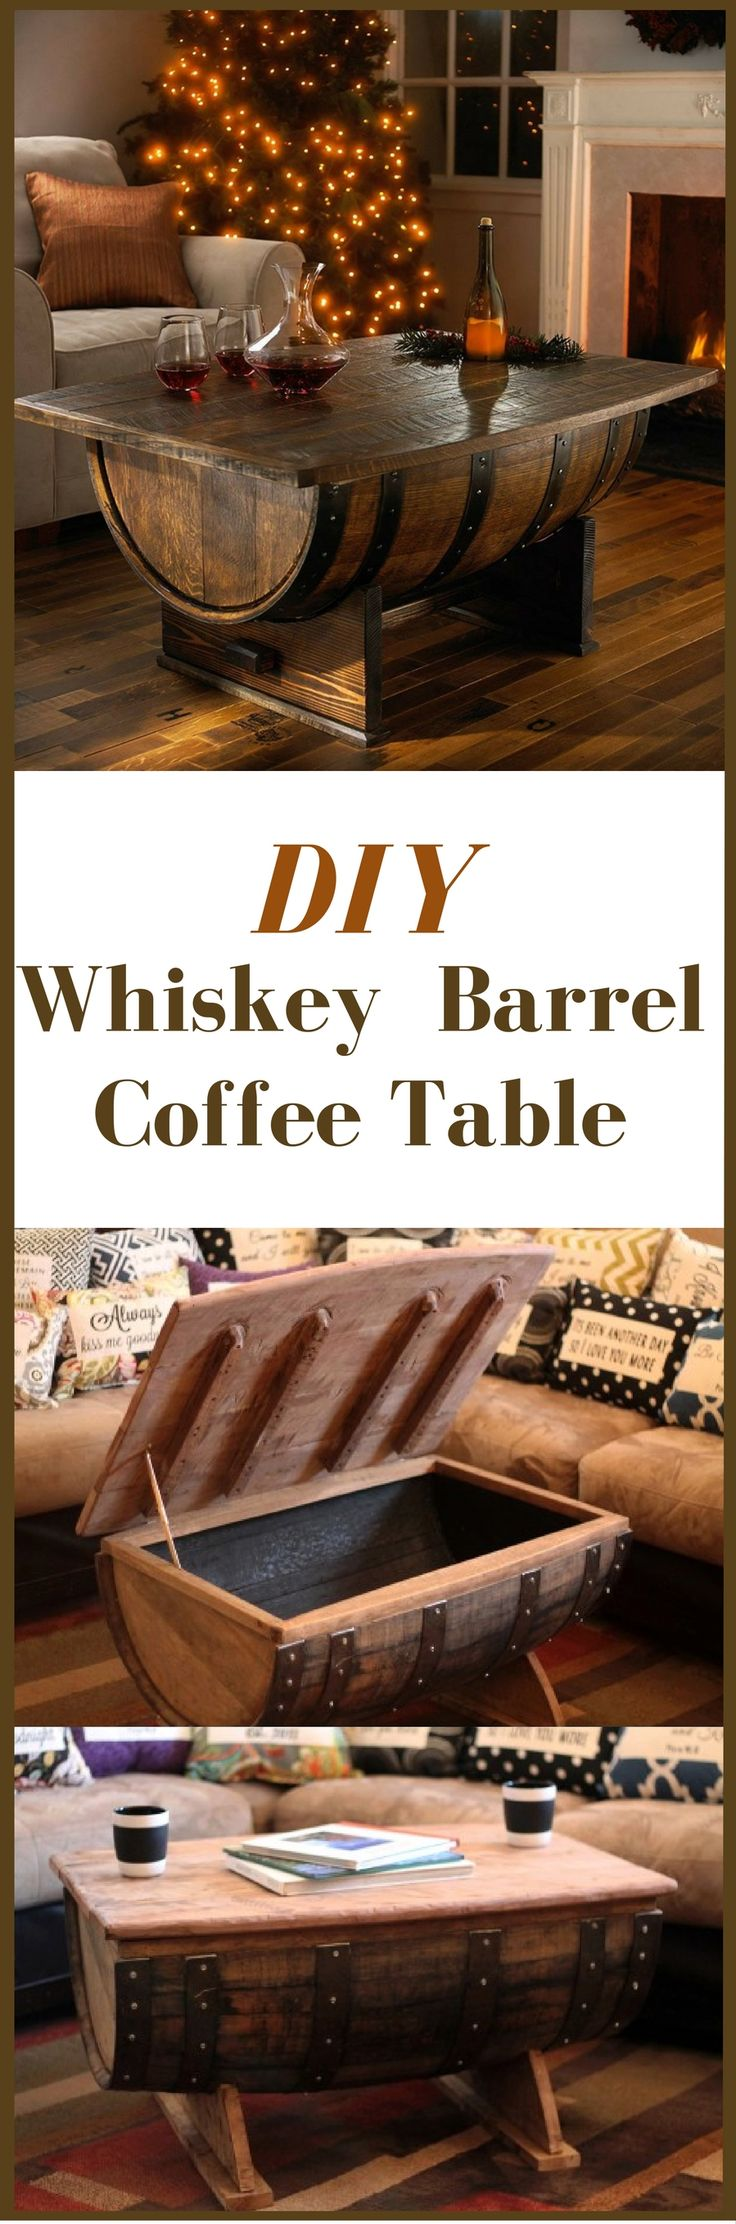 learn how to turn an old whiskey barrel into an amazing whiskey barrel coffee table the table top is hinged which makes the furniture a functional whiskey arched table top wine cellar furniture